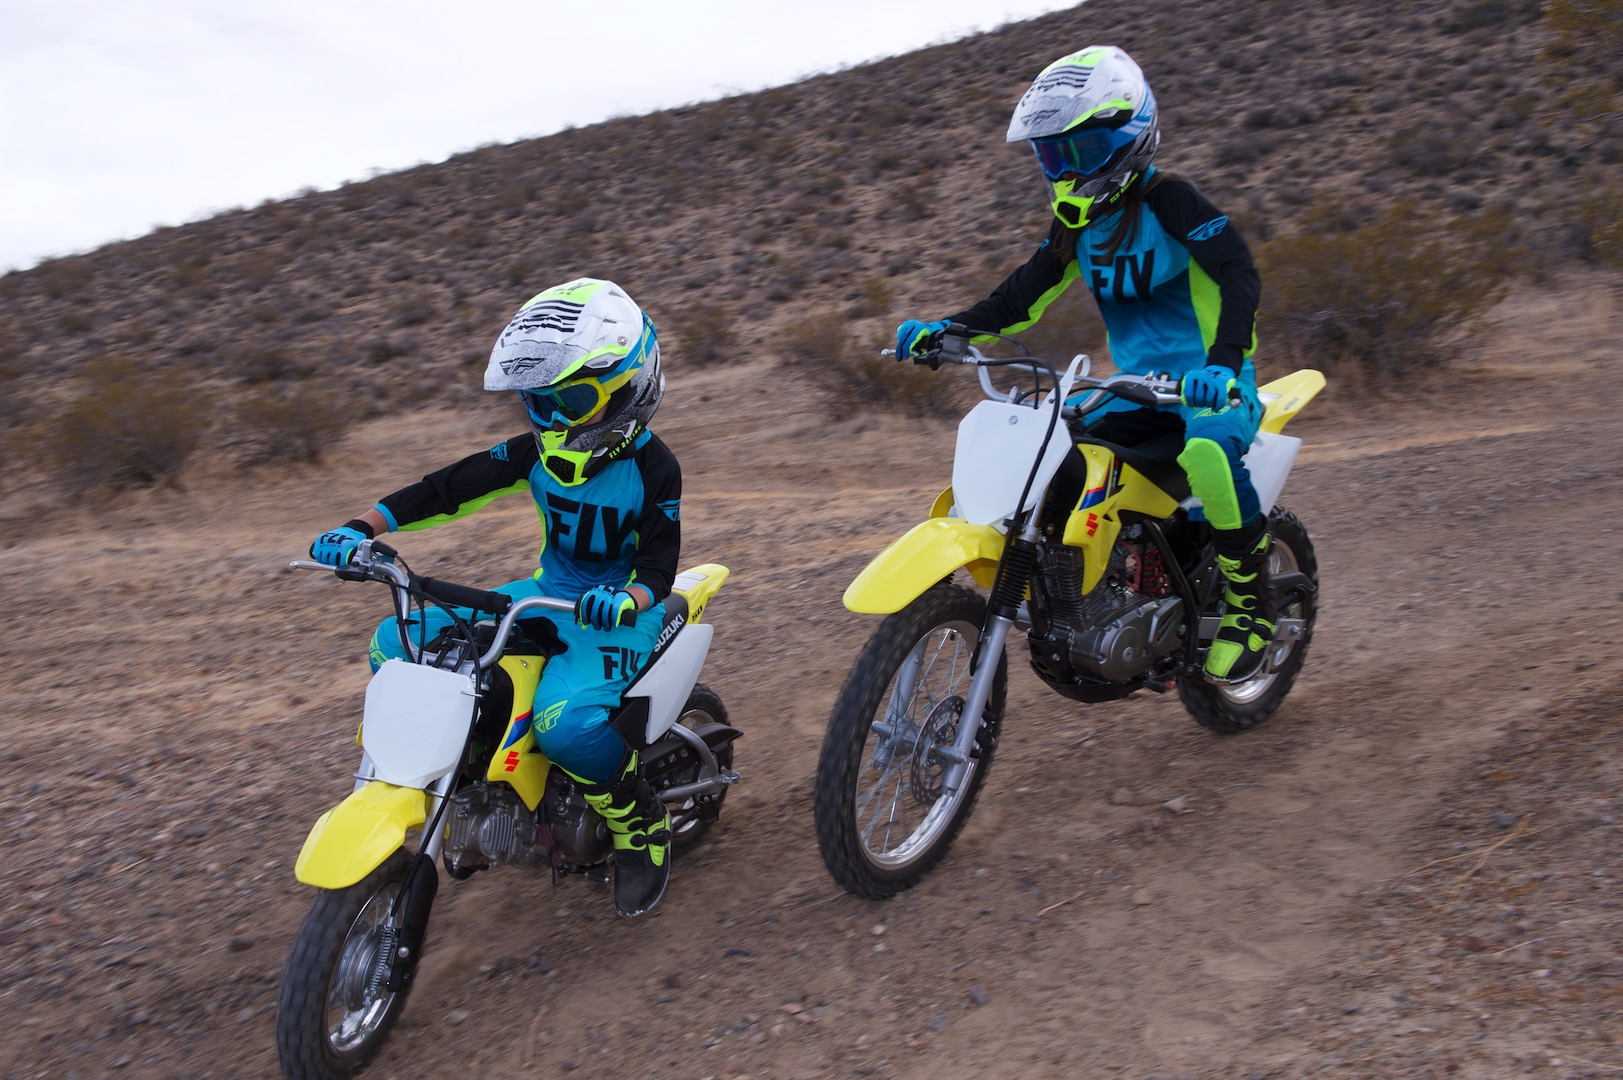 9 Best Dirt Bikes Reviews For a New Teen Rider in 2021